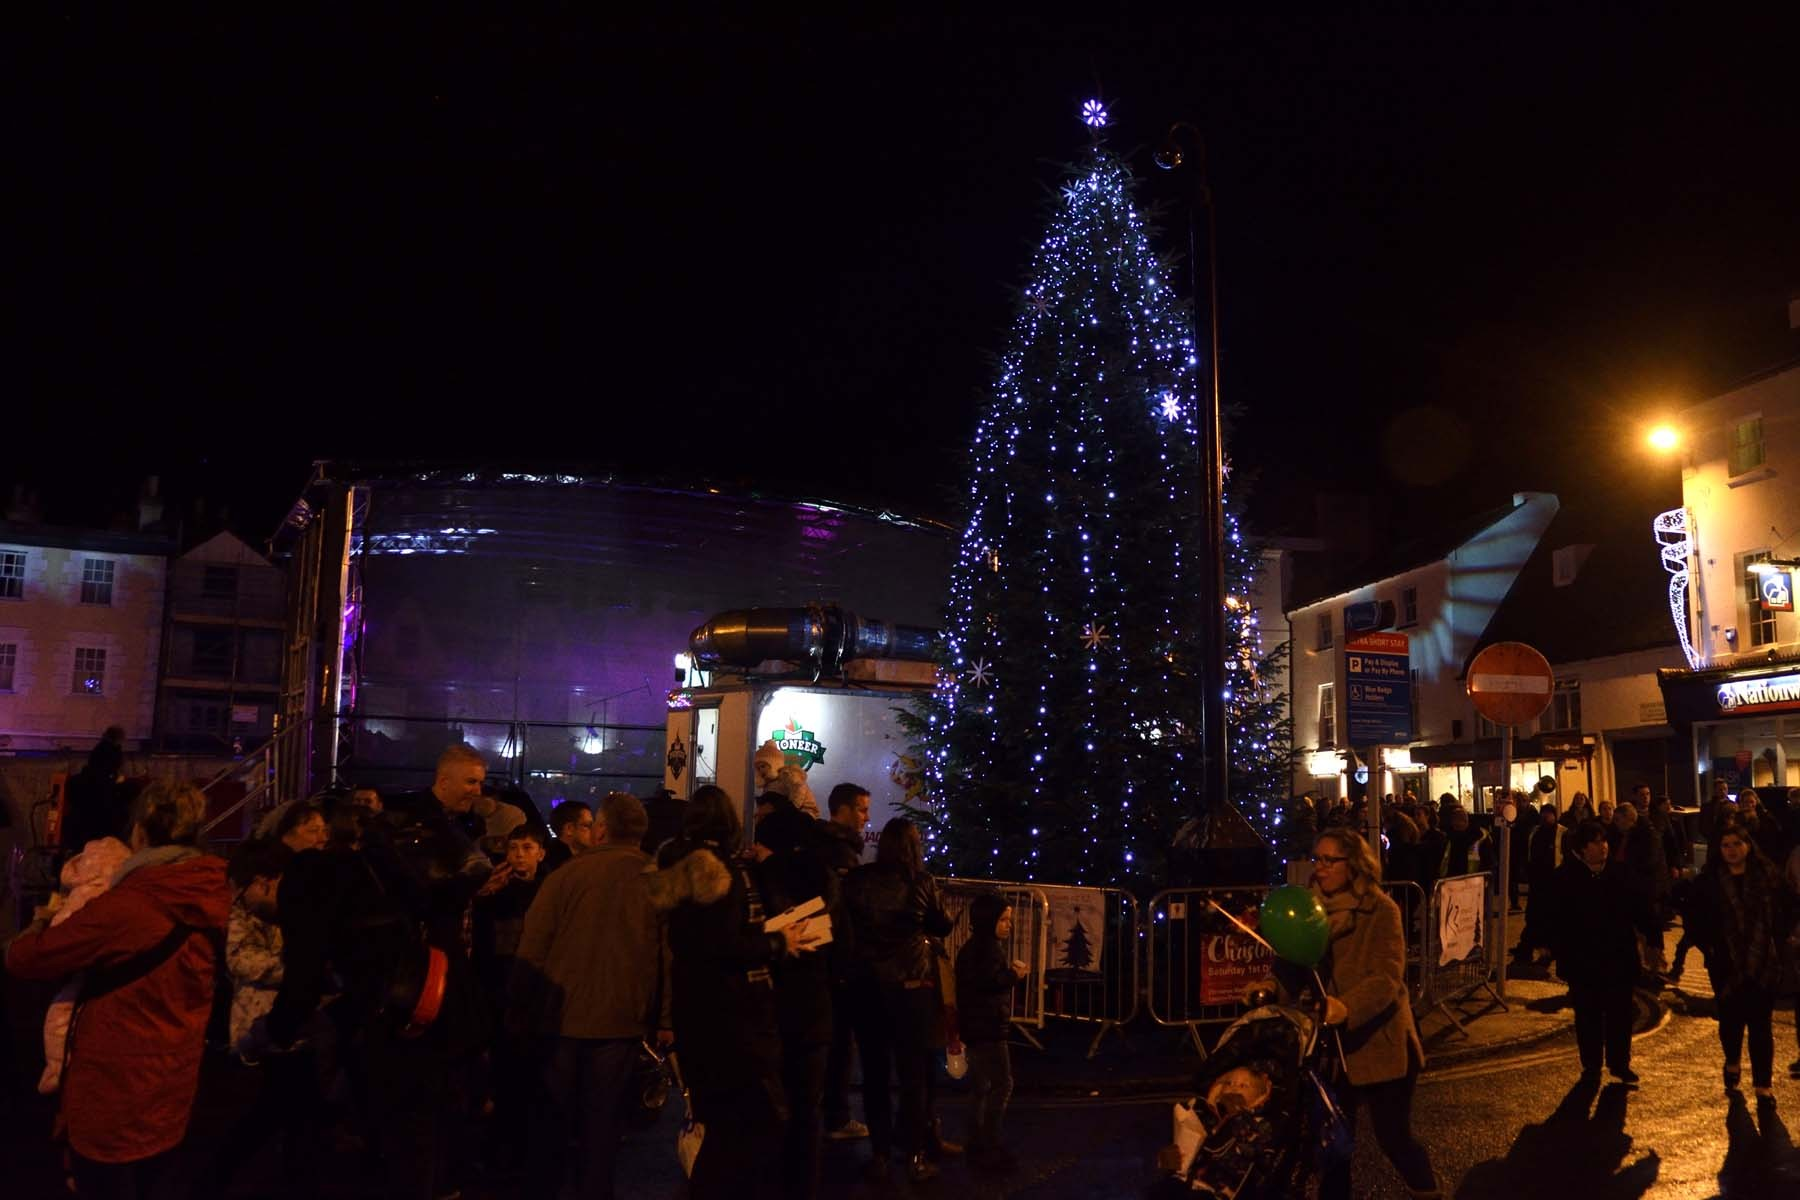 Bicester Christmas Lights 2018 - The town centre Christmas tree took centre stage for the switch-on